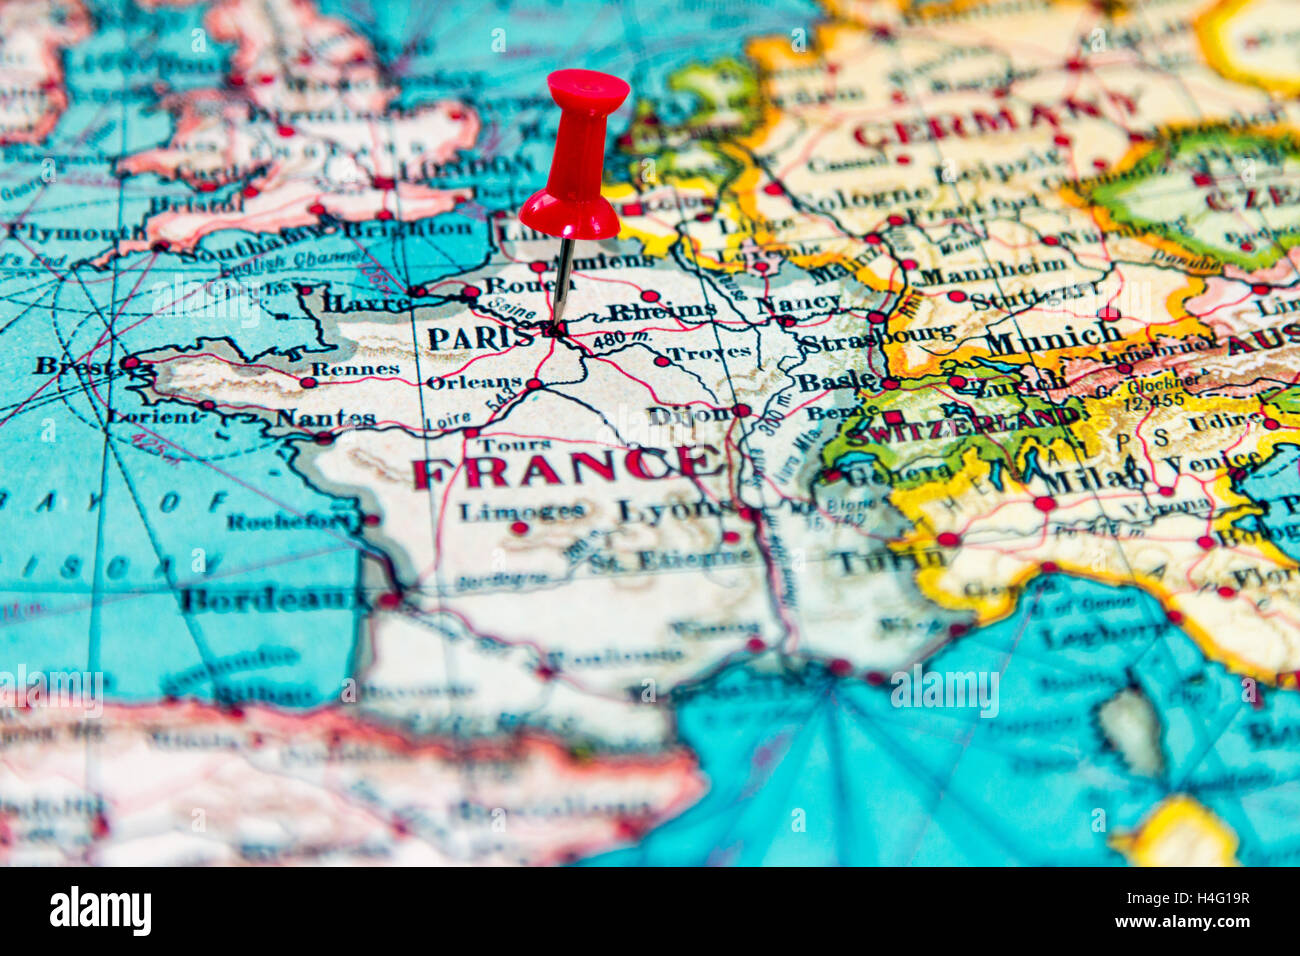 Paris france pinned on vintage map of europe stock photo 123283491 paris france pinned on vintage map of europe gumiabroncs Image collections